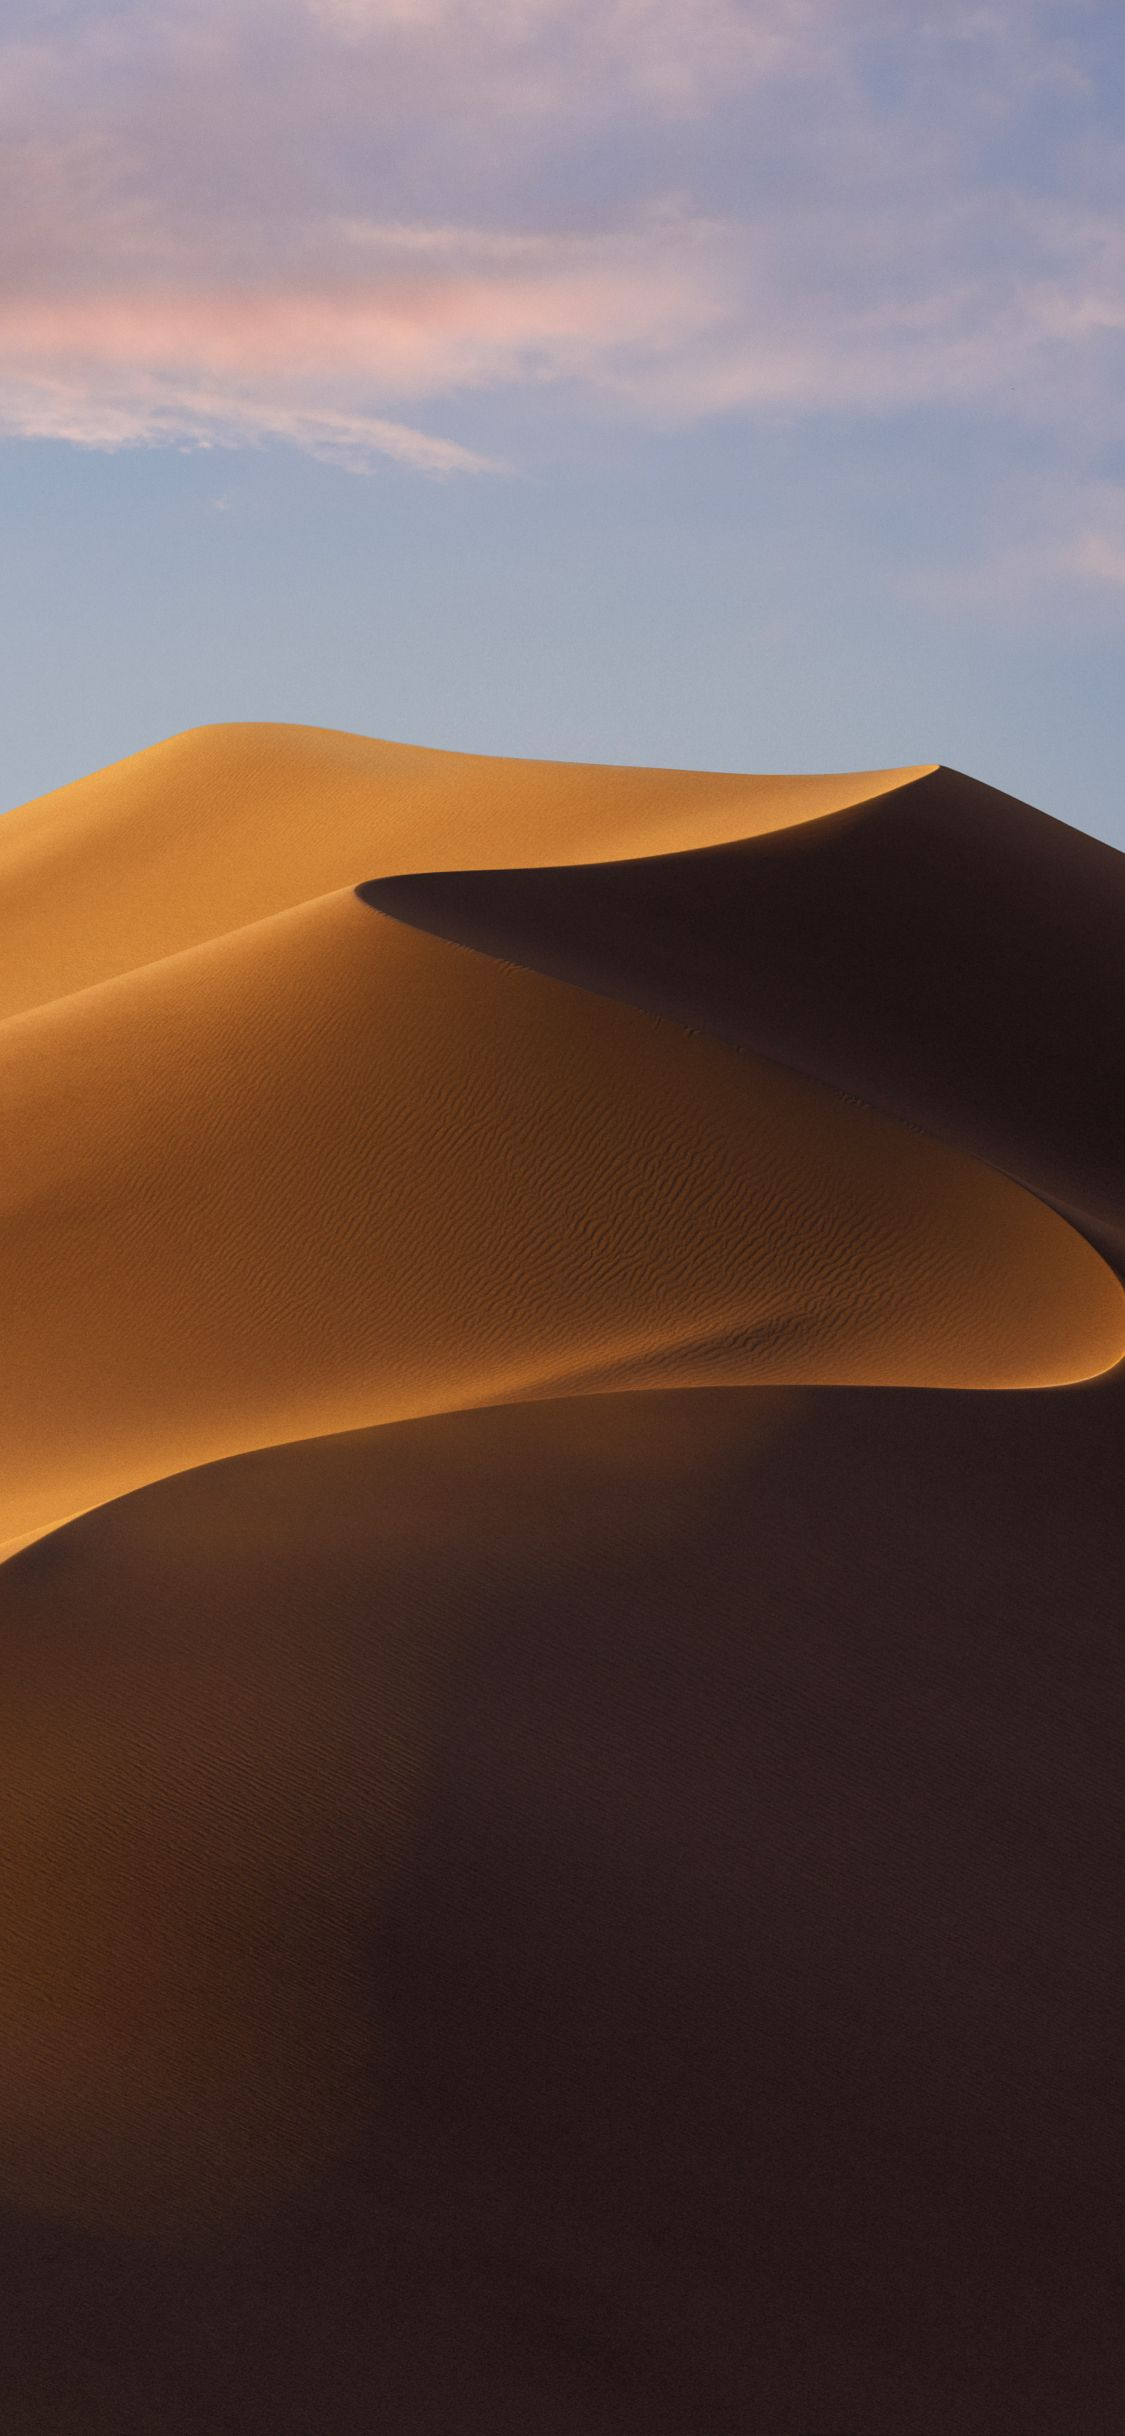 Download Macos Mojave Wallpapers For Desktop And Iphone En